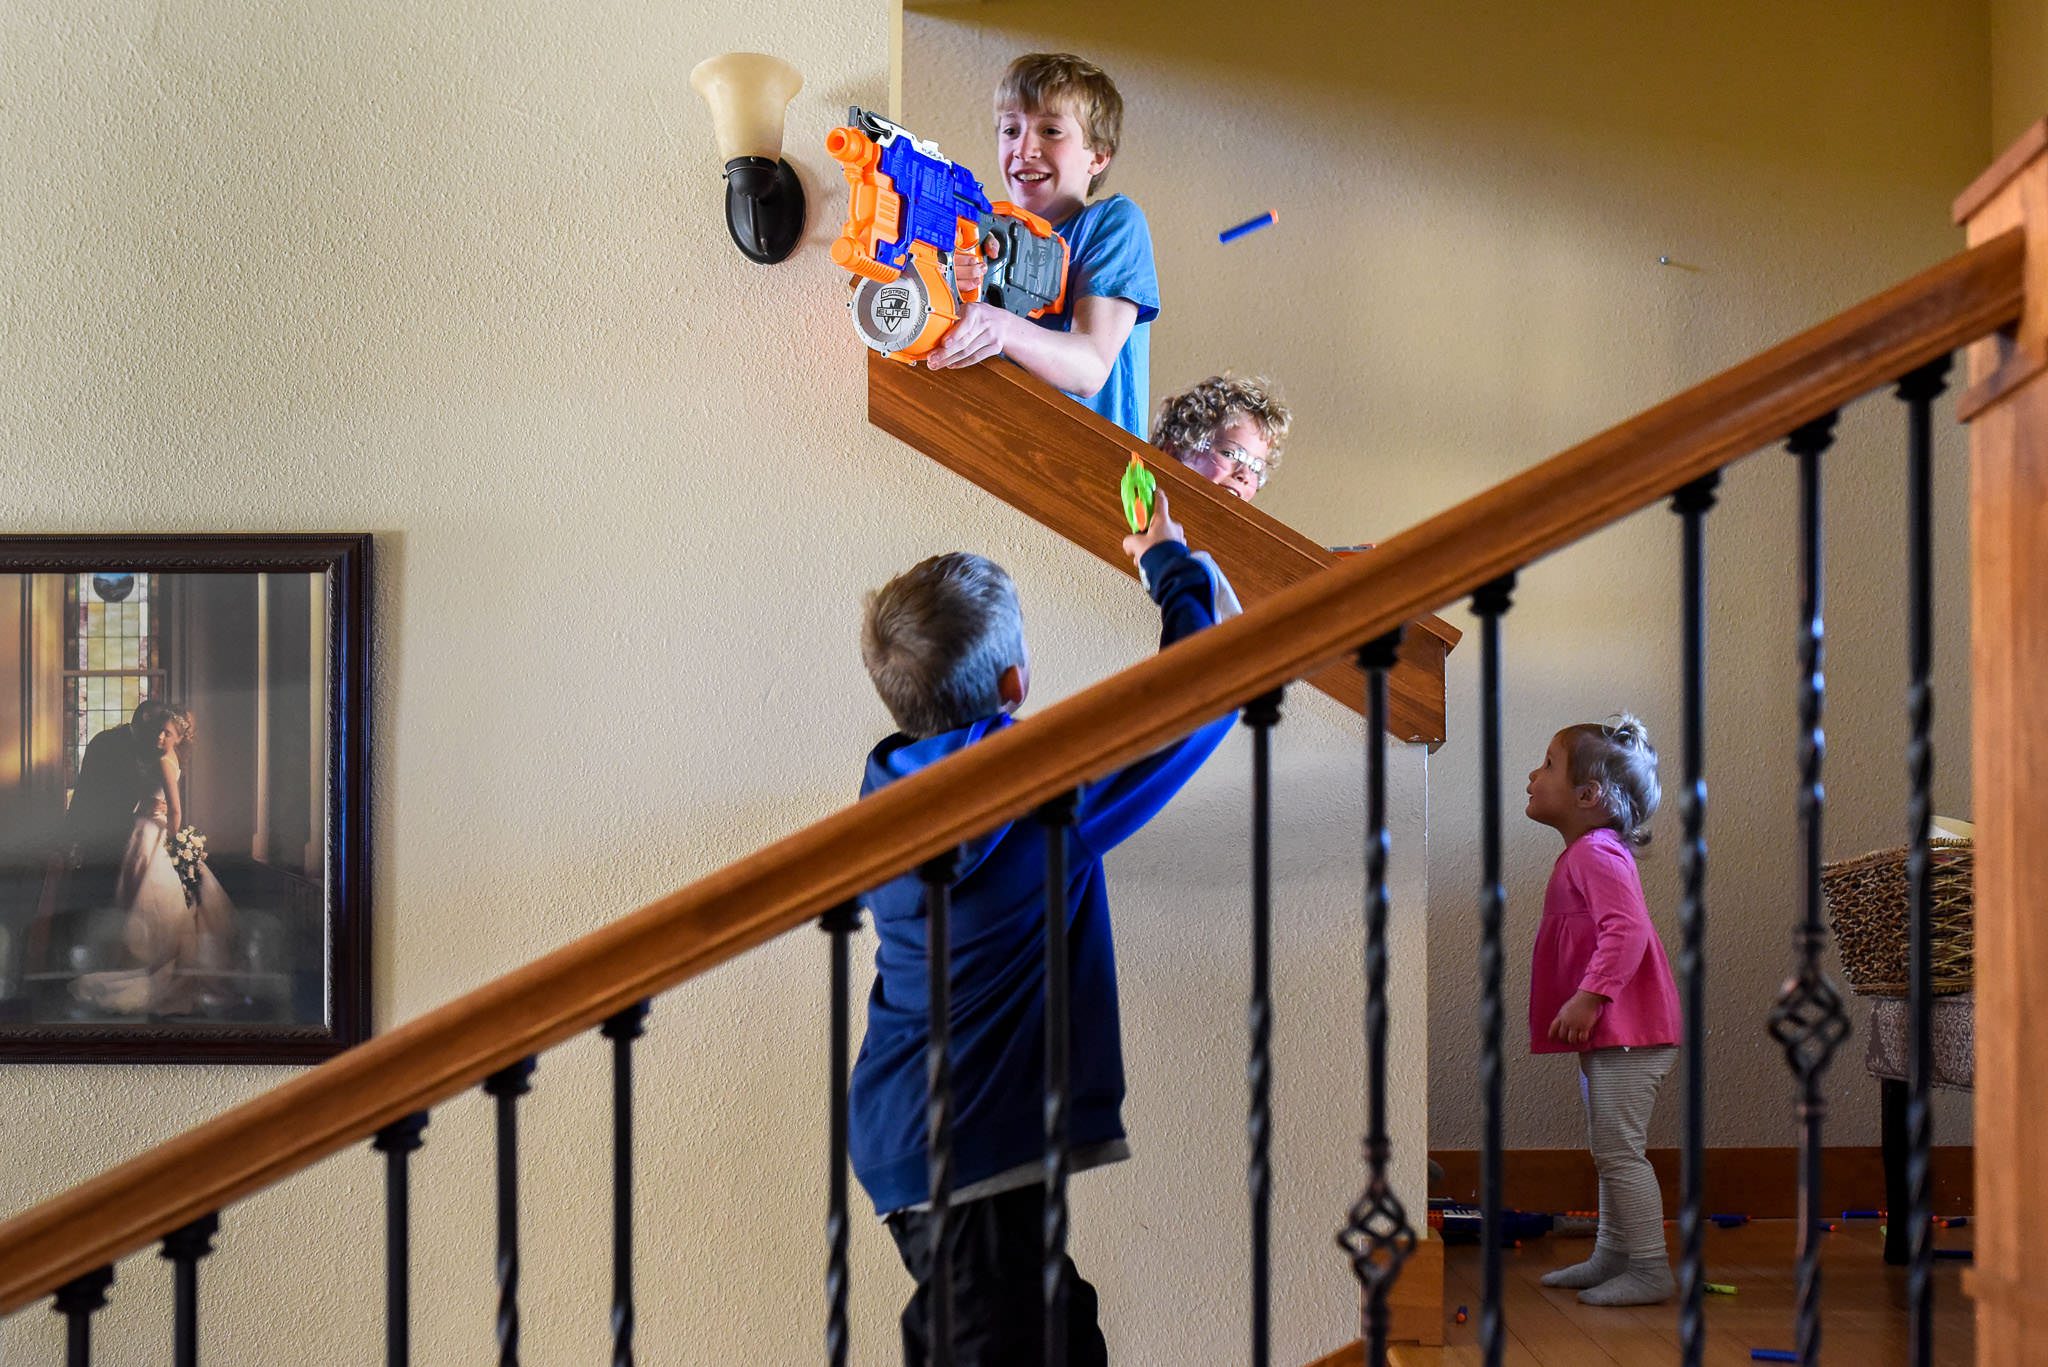 Children photography playing with nerf guns